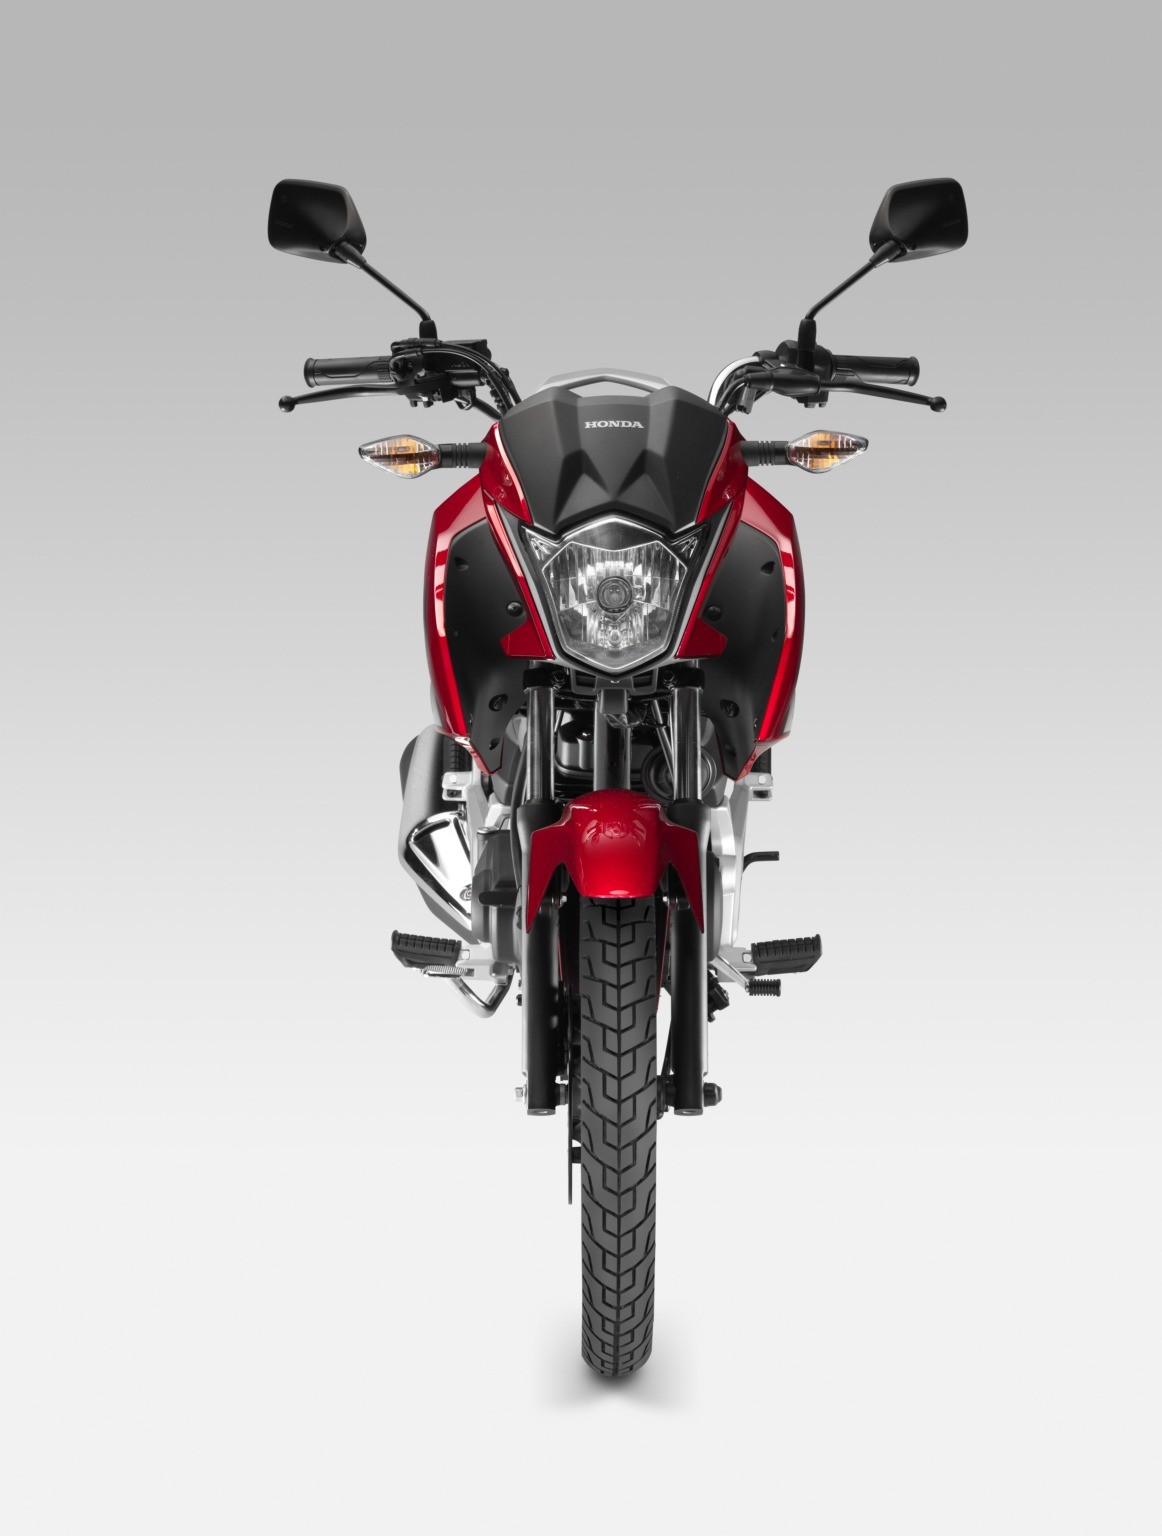 2015 honda cb125f to arrive in europe very soon   autoevolution